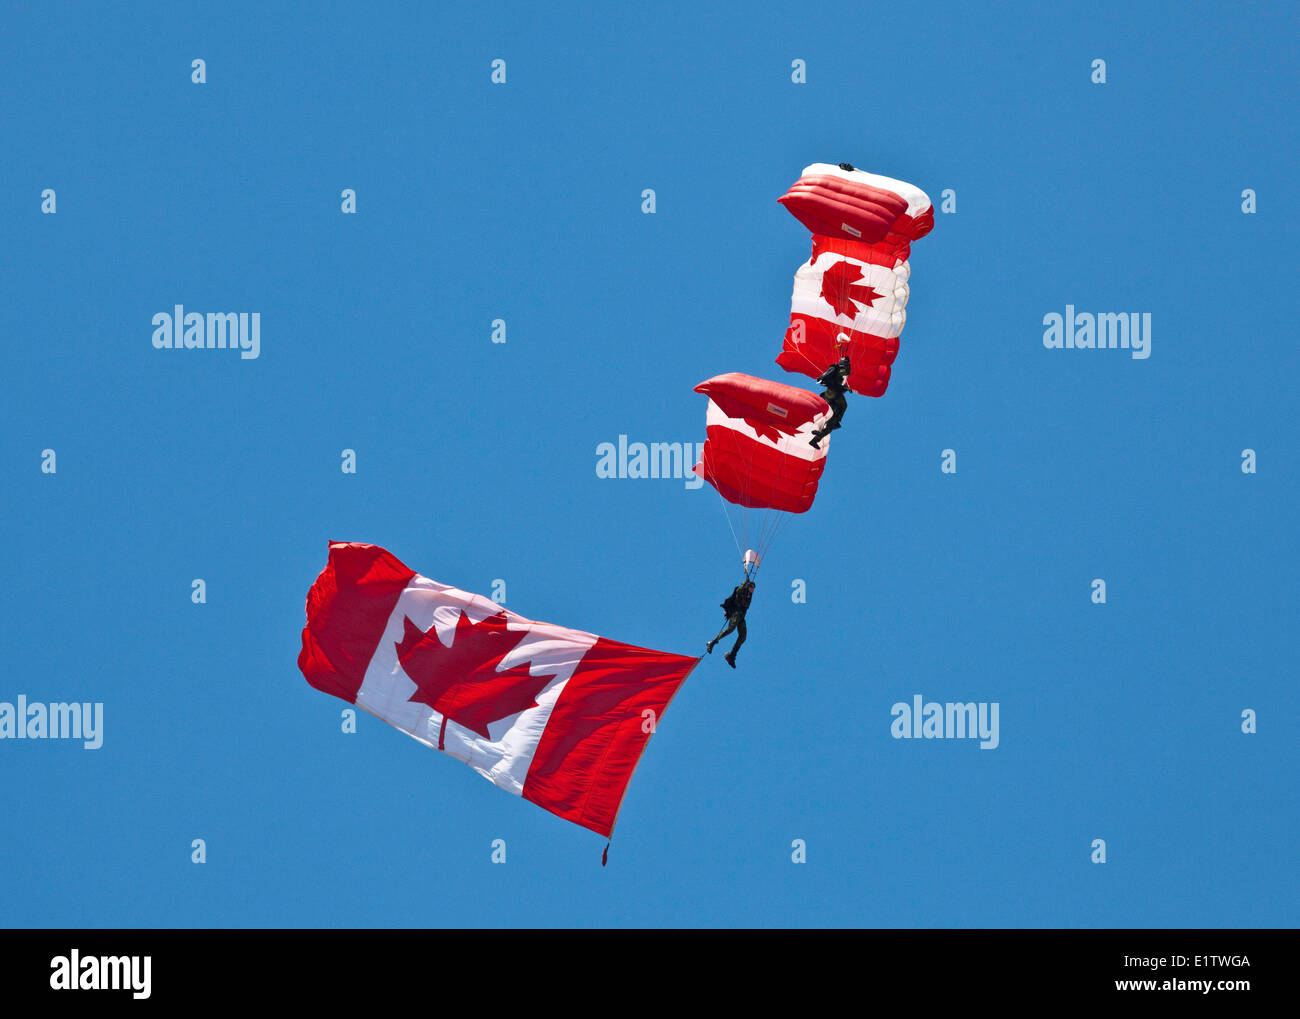 Canadian Forces Parachute Team, The SkyHawks;Forces canadiennes,les SkyHawks,The Skyhawks;Domonstartion Team;Canada;Trenton;Onta - Stock Image